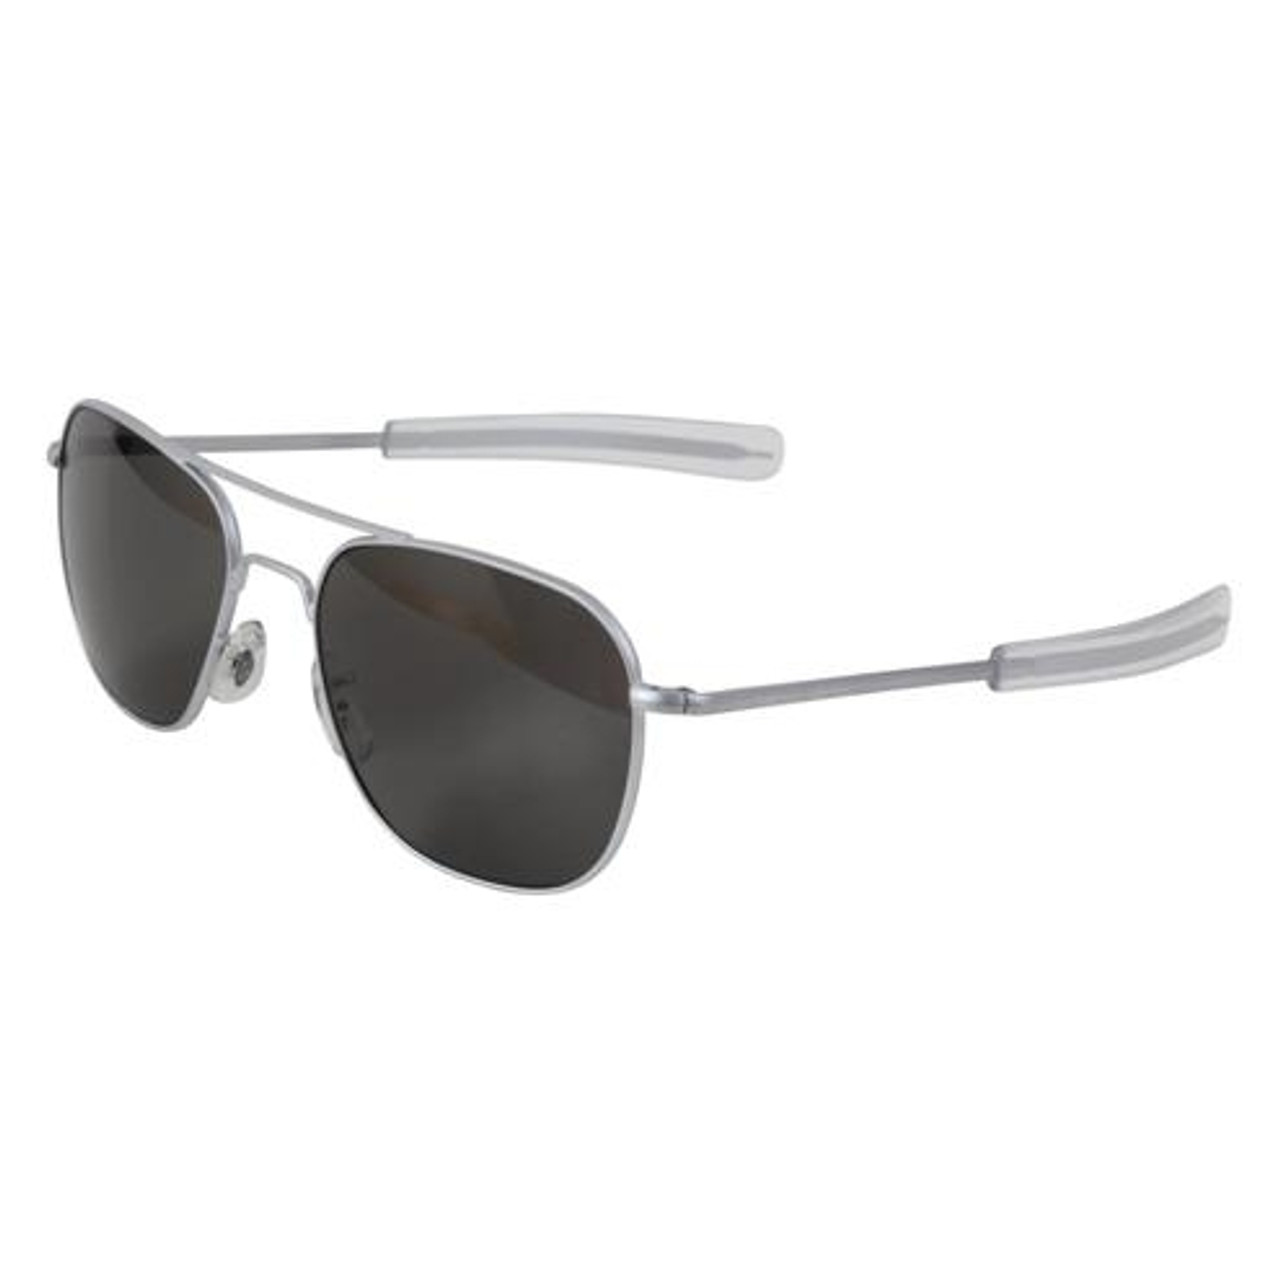 US Gov't Pilots Sunglasses - 52mm from Hessen Tactical